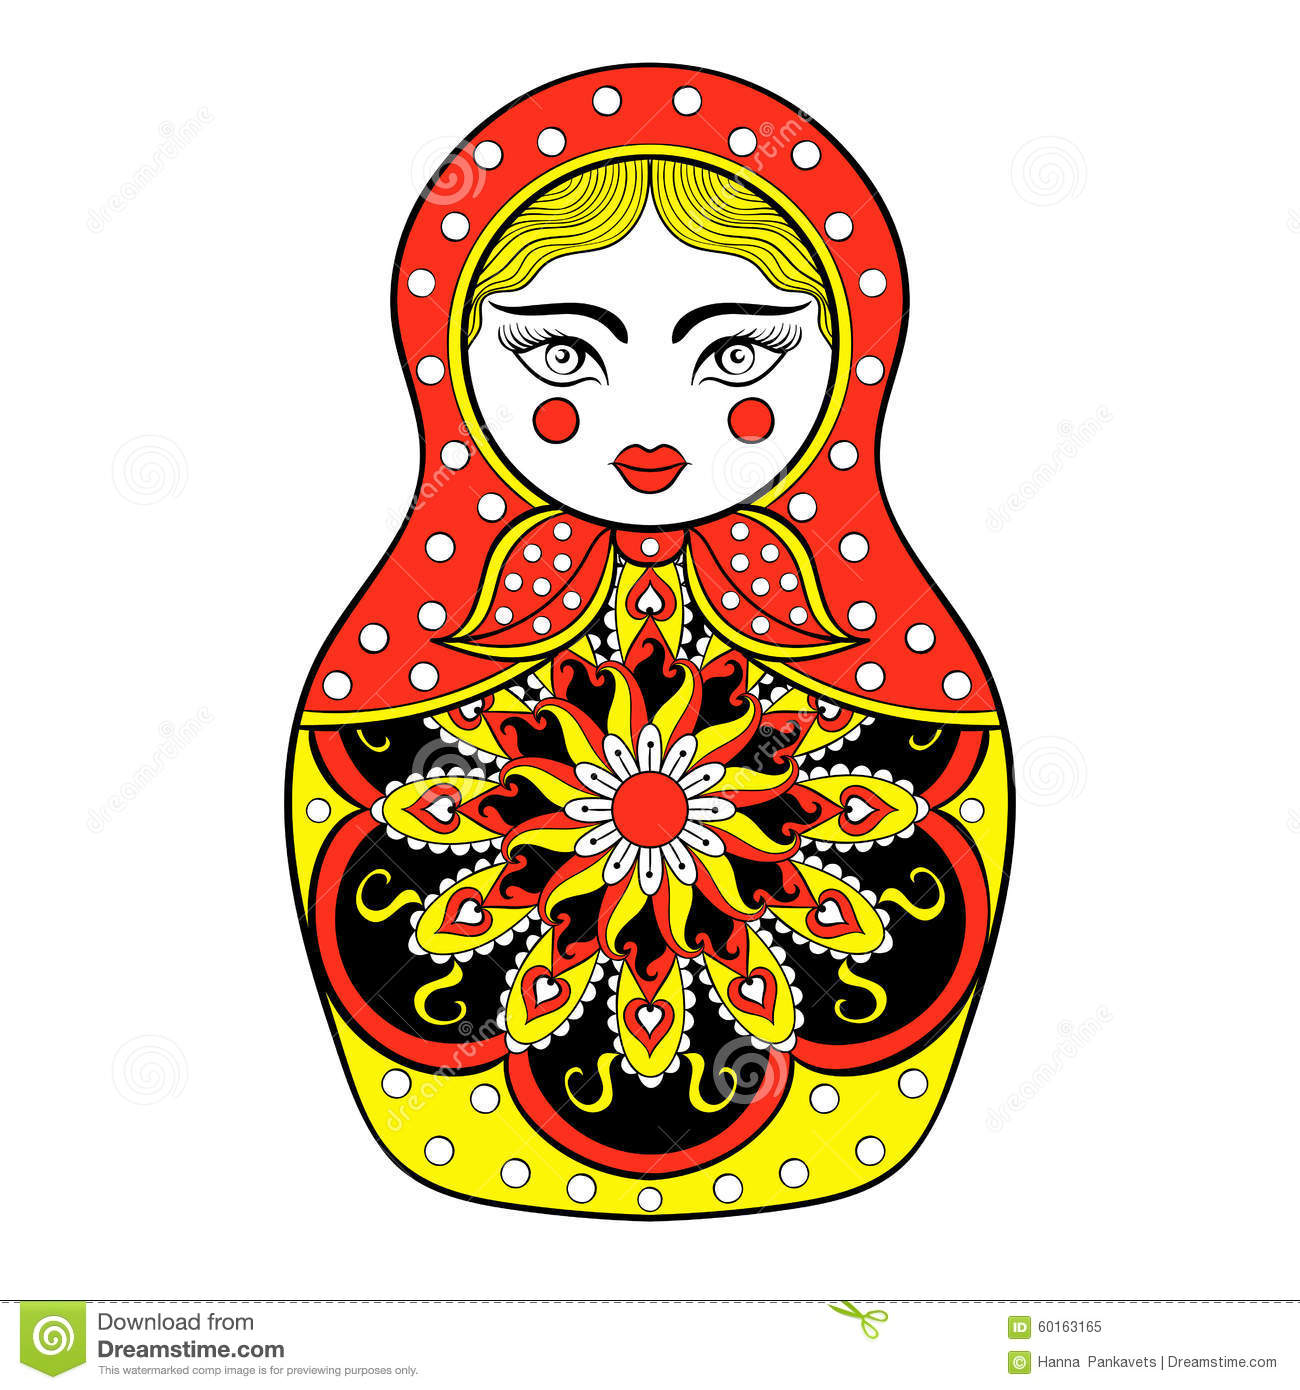 Zentangle Stylized Elegant Russian Doll Matryoshka Doll